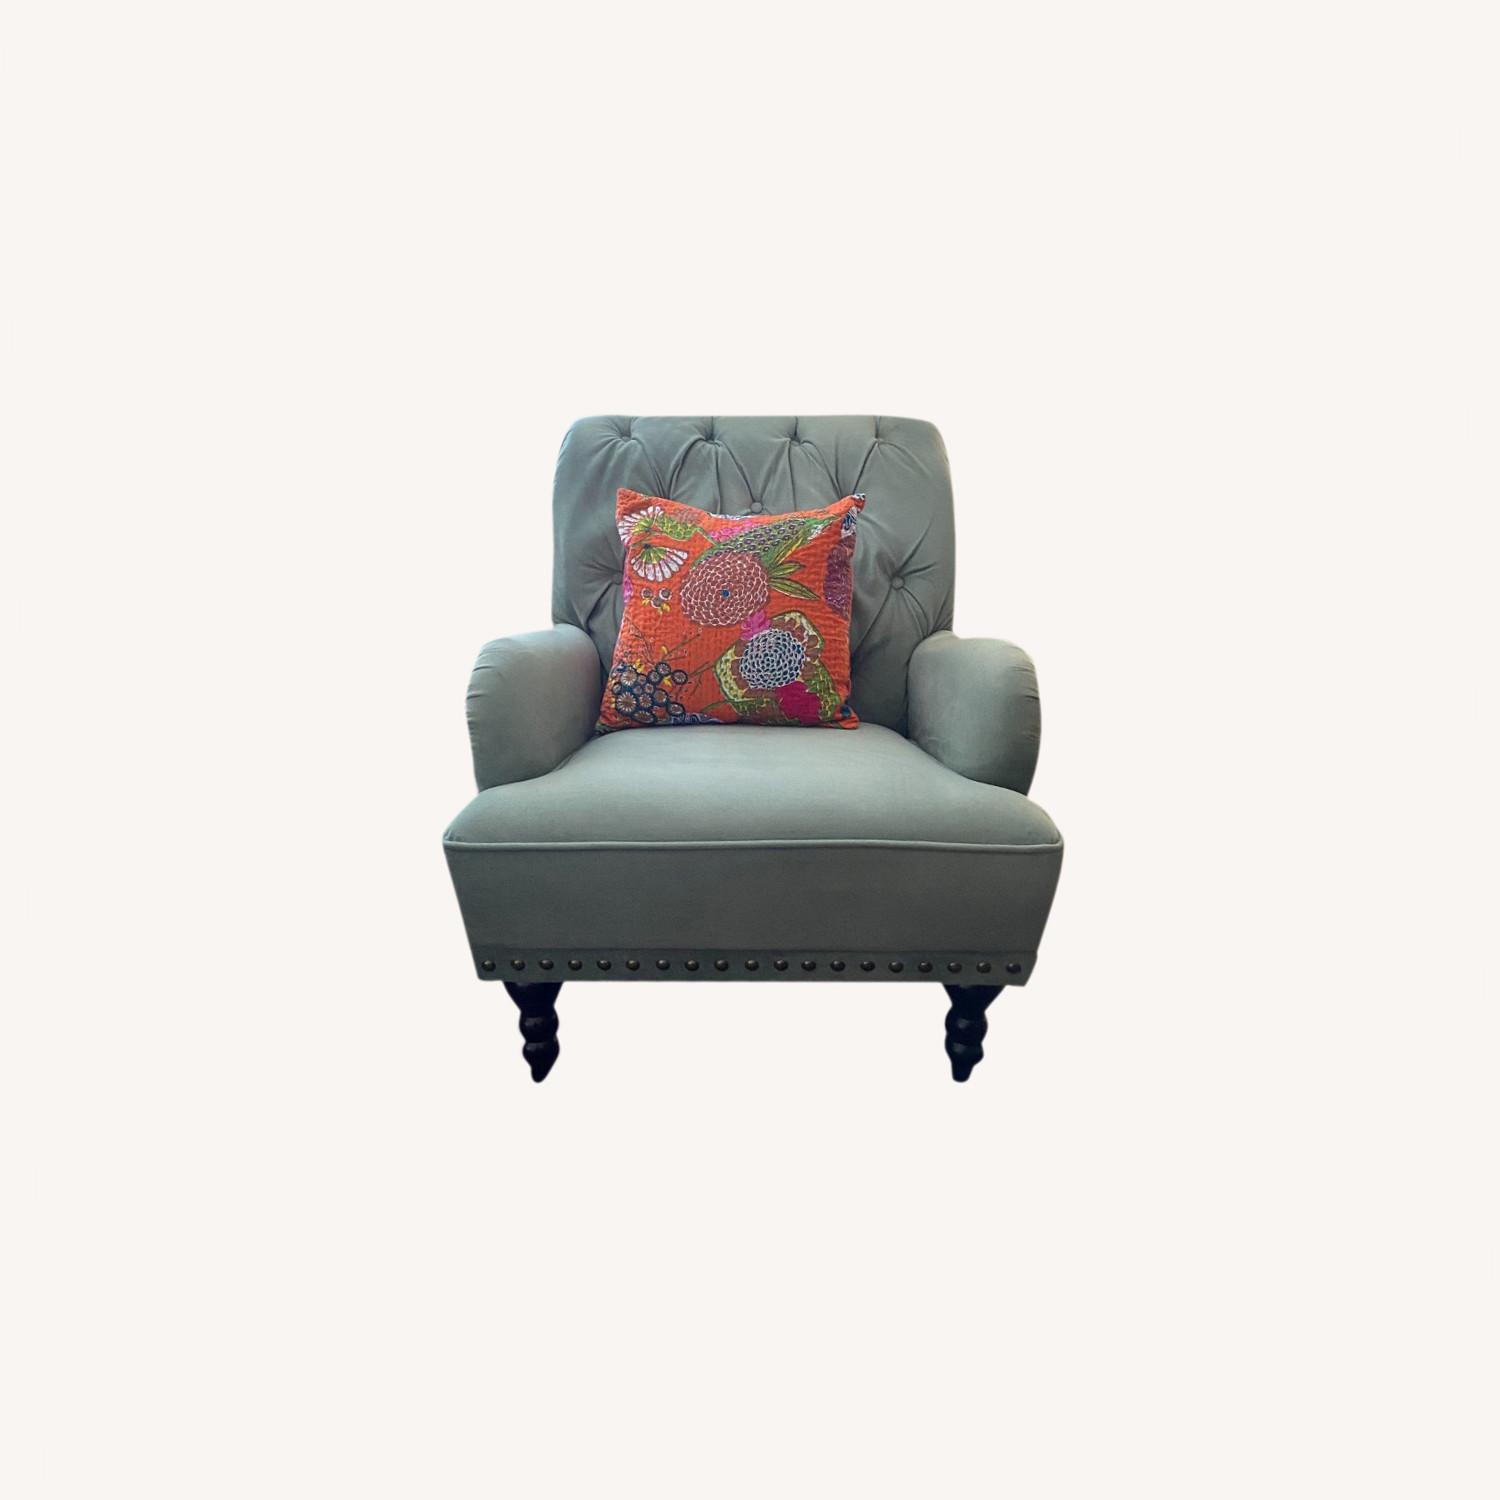 Pier 1 Chas Armchair - image-0